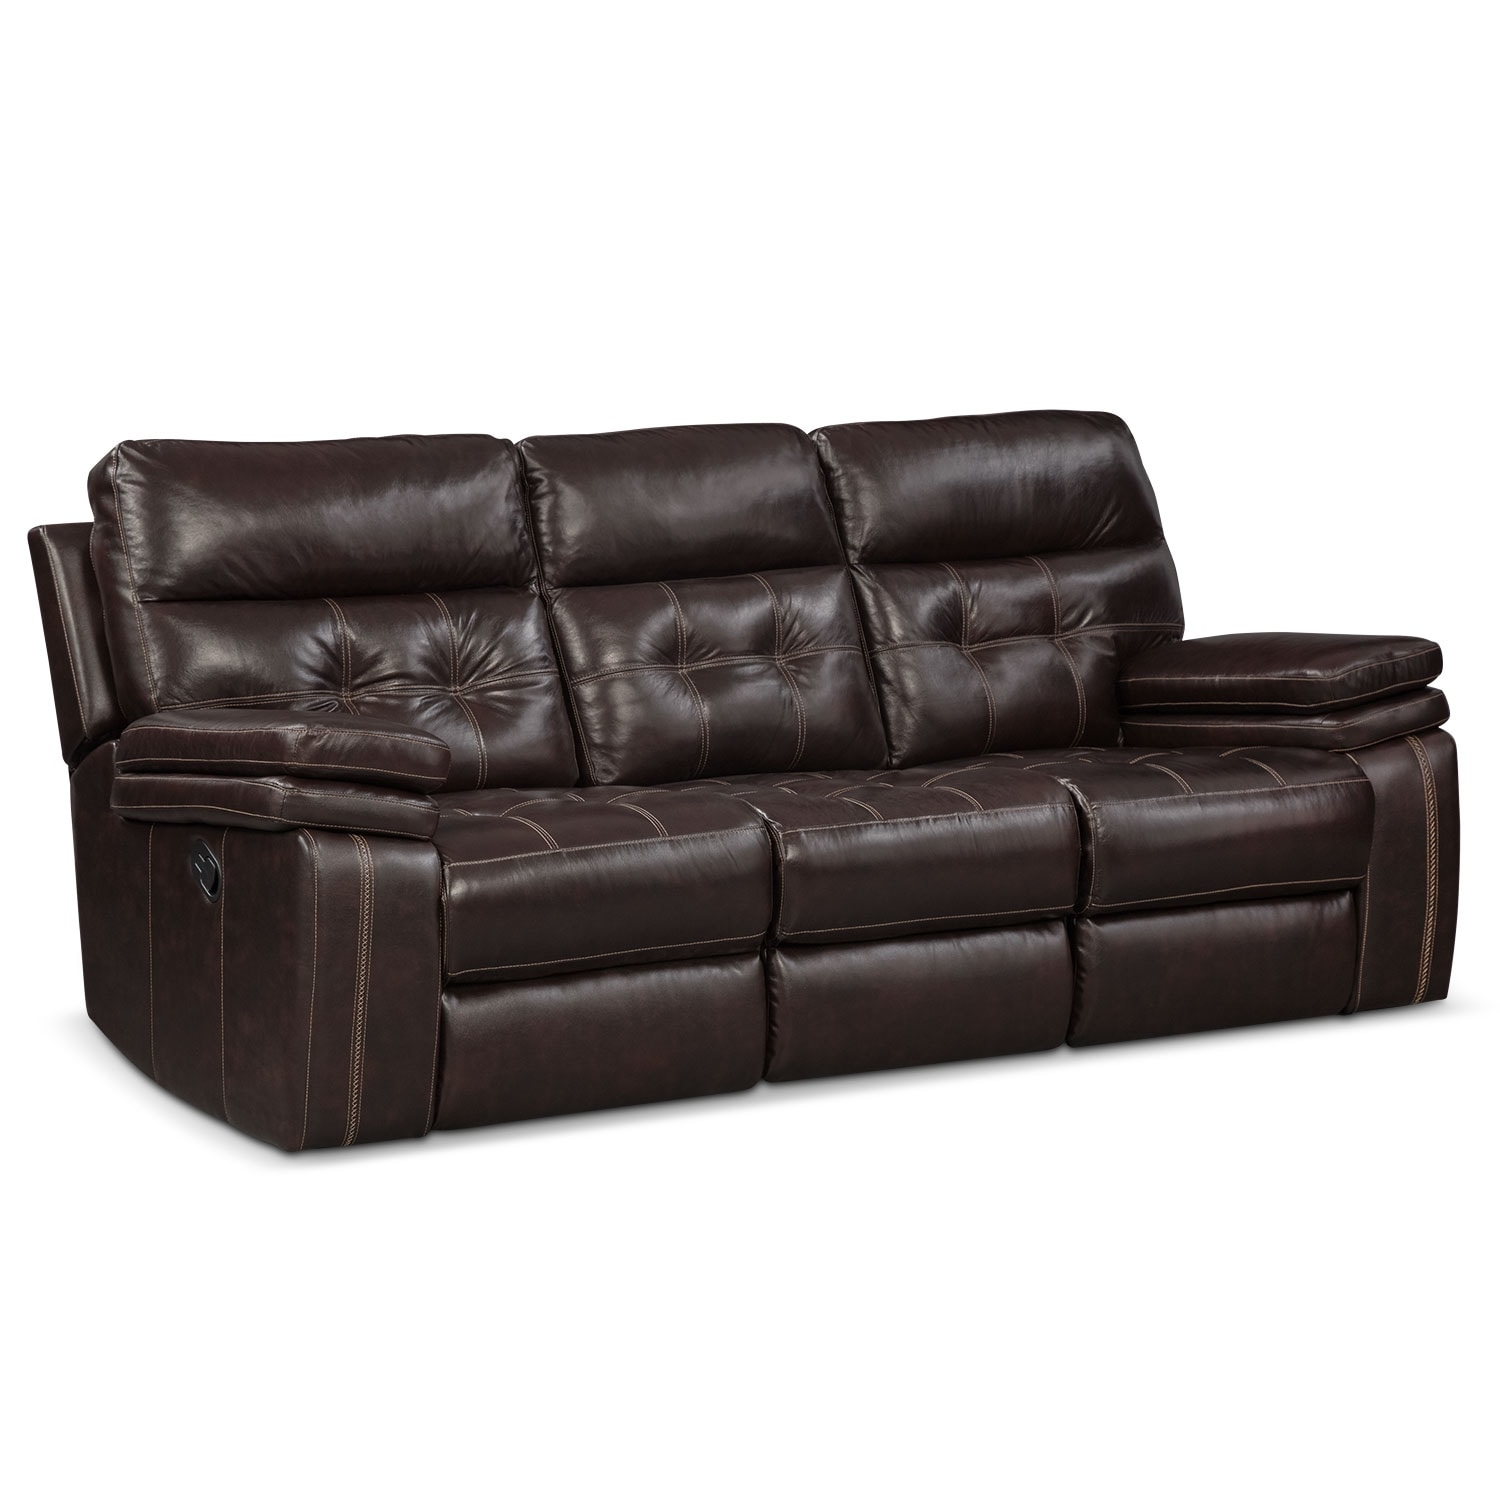 Brisco Brown Manual Reclining Sofa